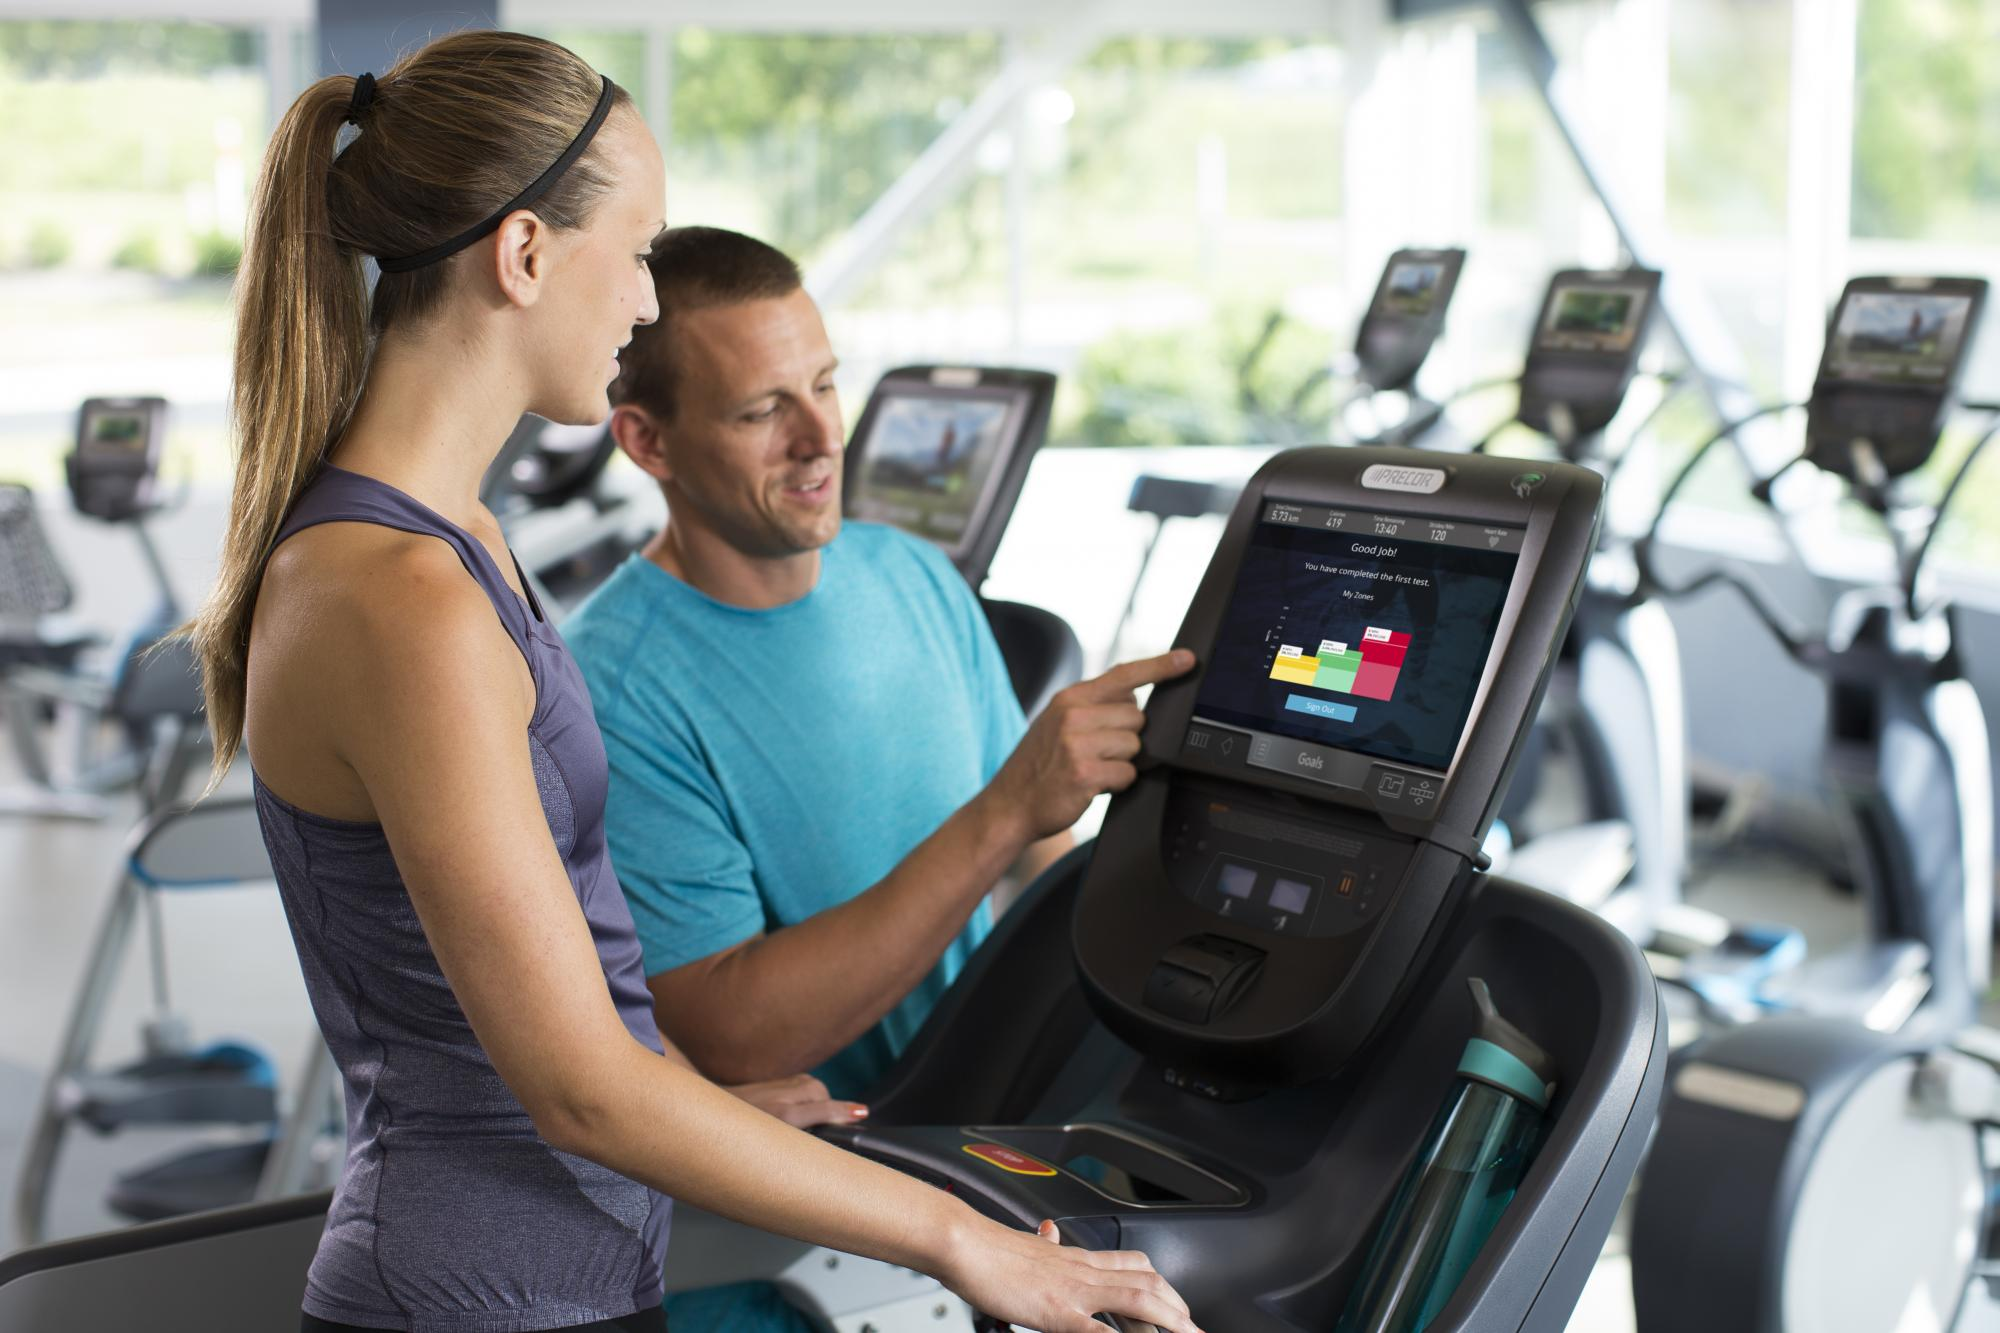 Gym Anxiety: What It Is and How to Get Over It - Precor (US)